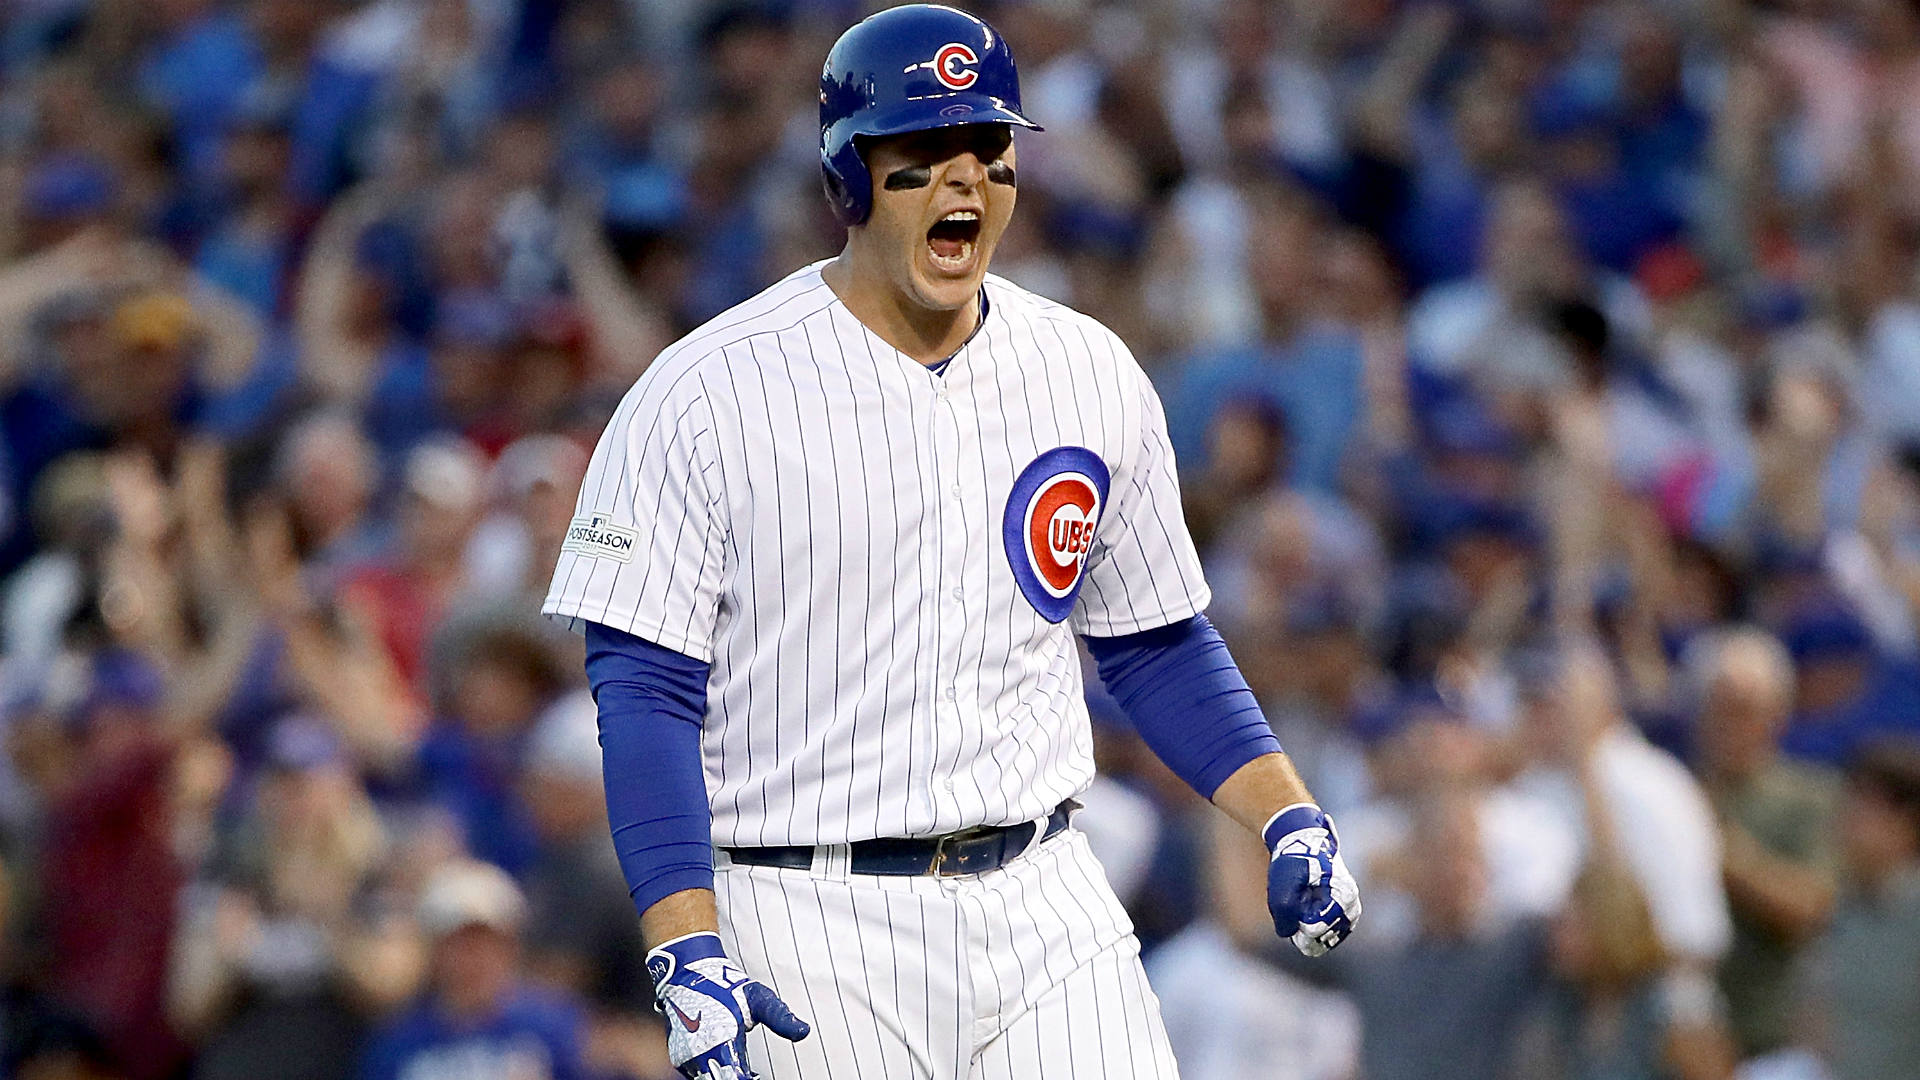 Rizzo comes through as Cubs edge Nationals